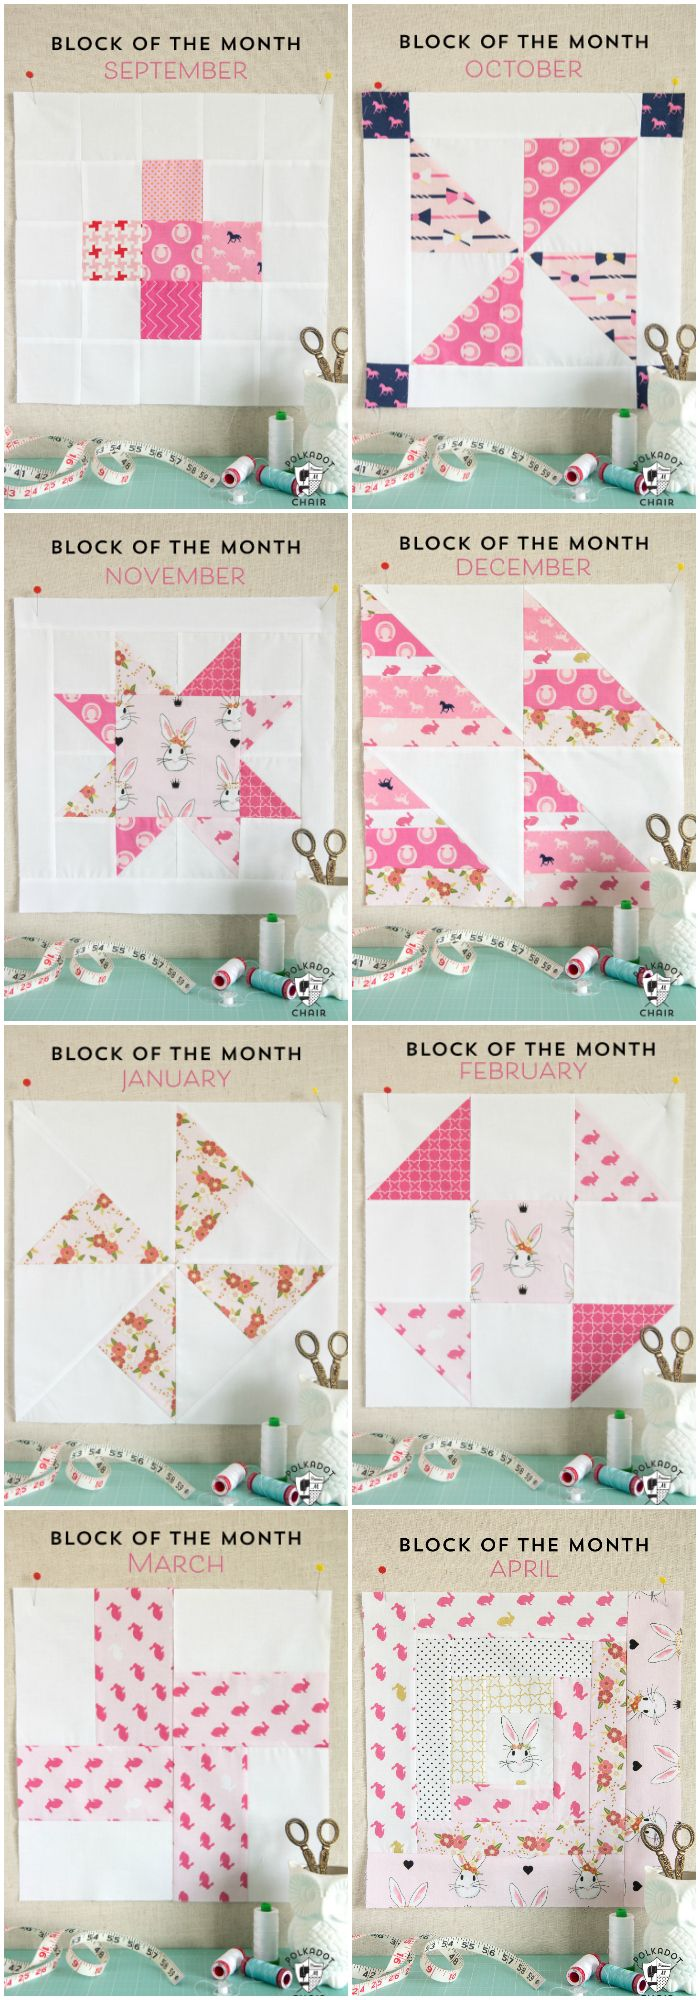 Free Quilt Tutorial and Pattern for a Log Cabin Quilt block; the April Block of the Month offered on the Polka Dot Chair Blog - So many cute quilt block ideas!